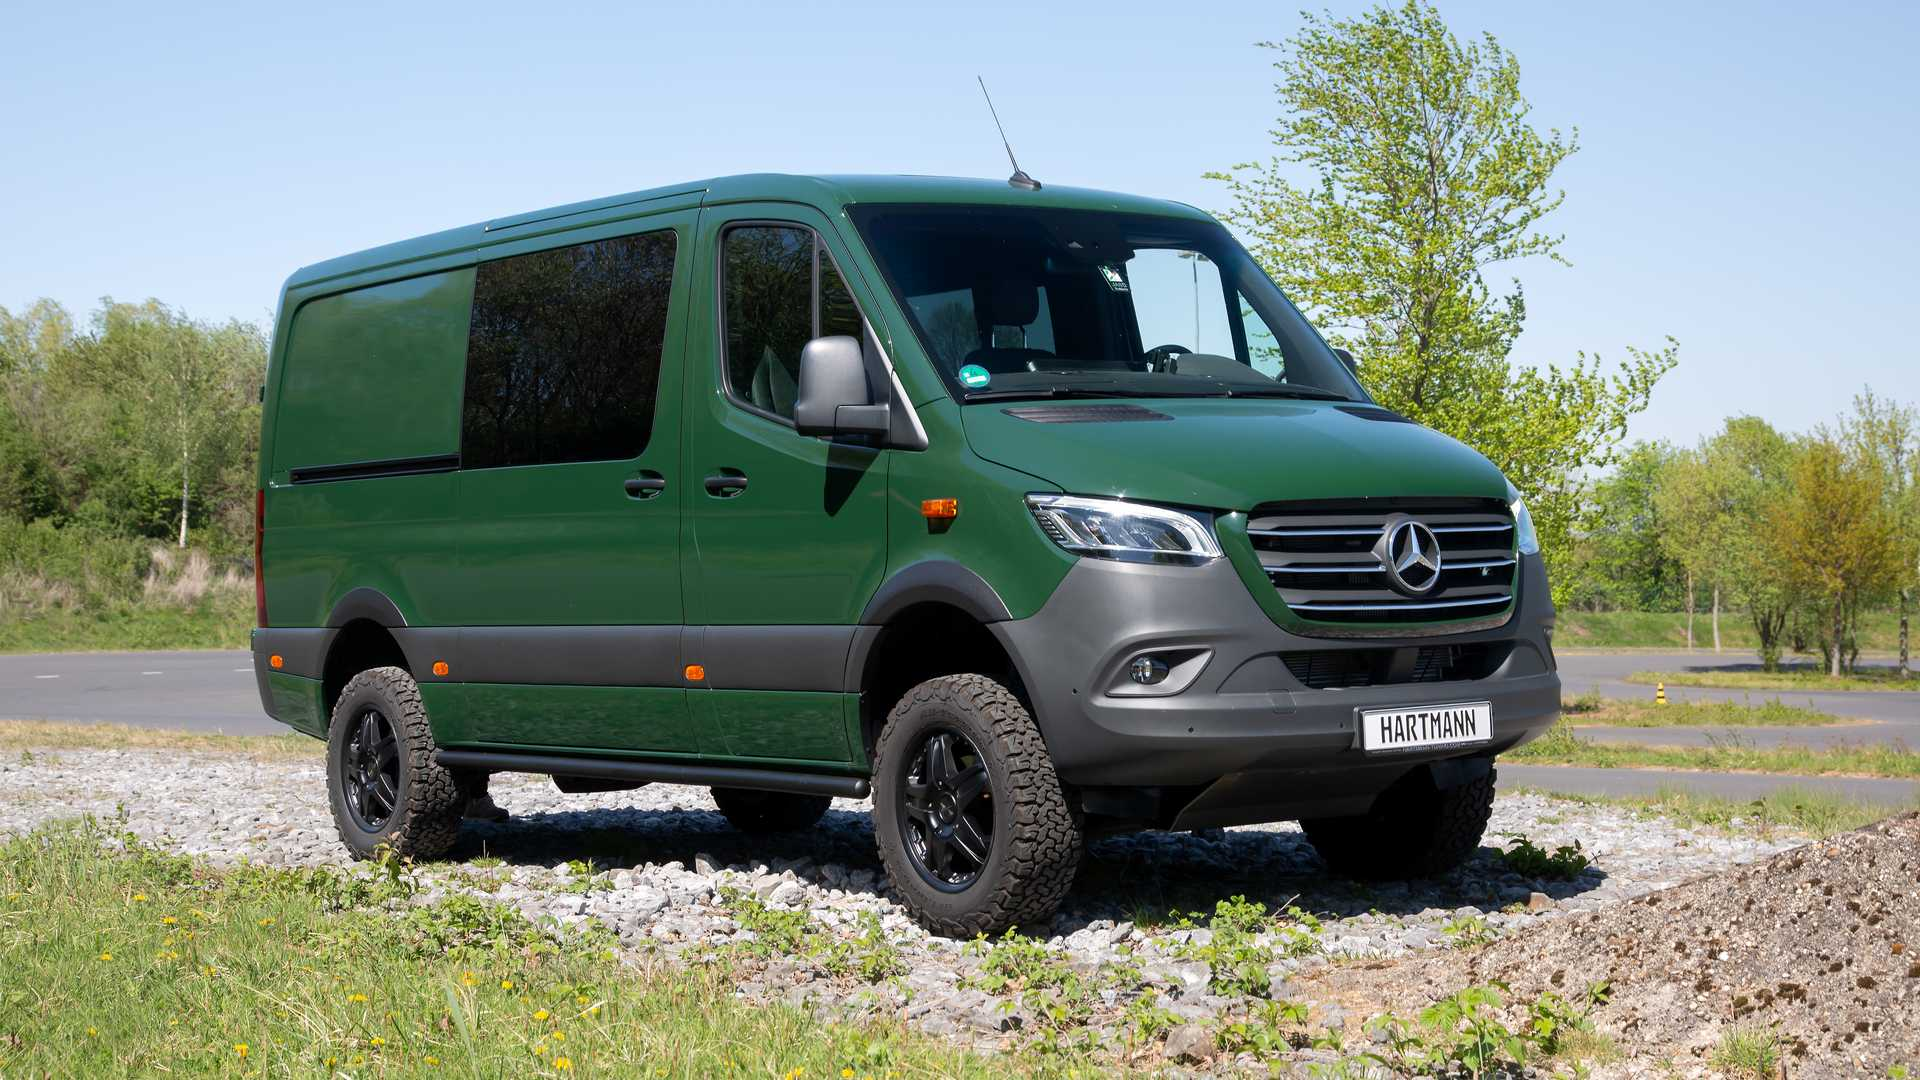 Mercedes Sprinter Becomes Off Road Van With Suspension Mods Chunky Tires